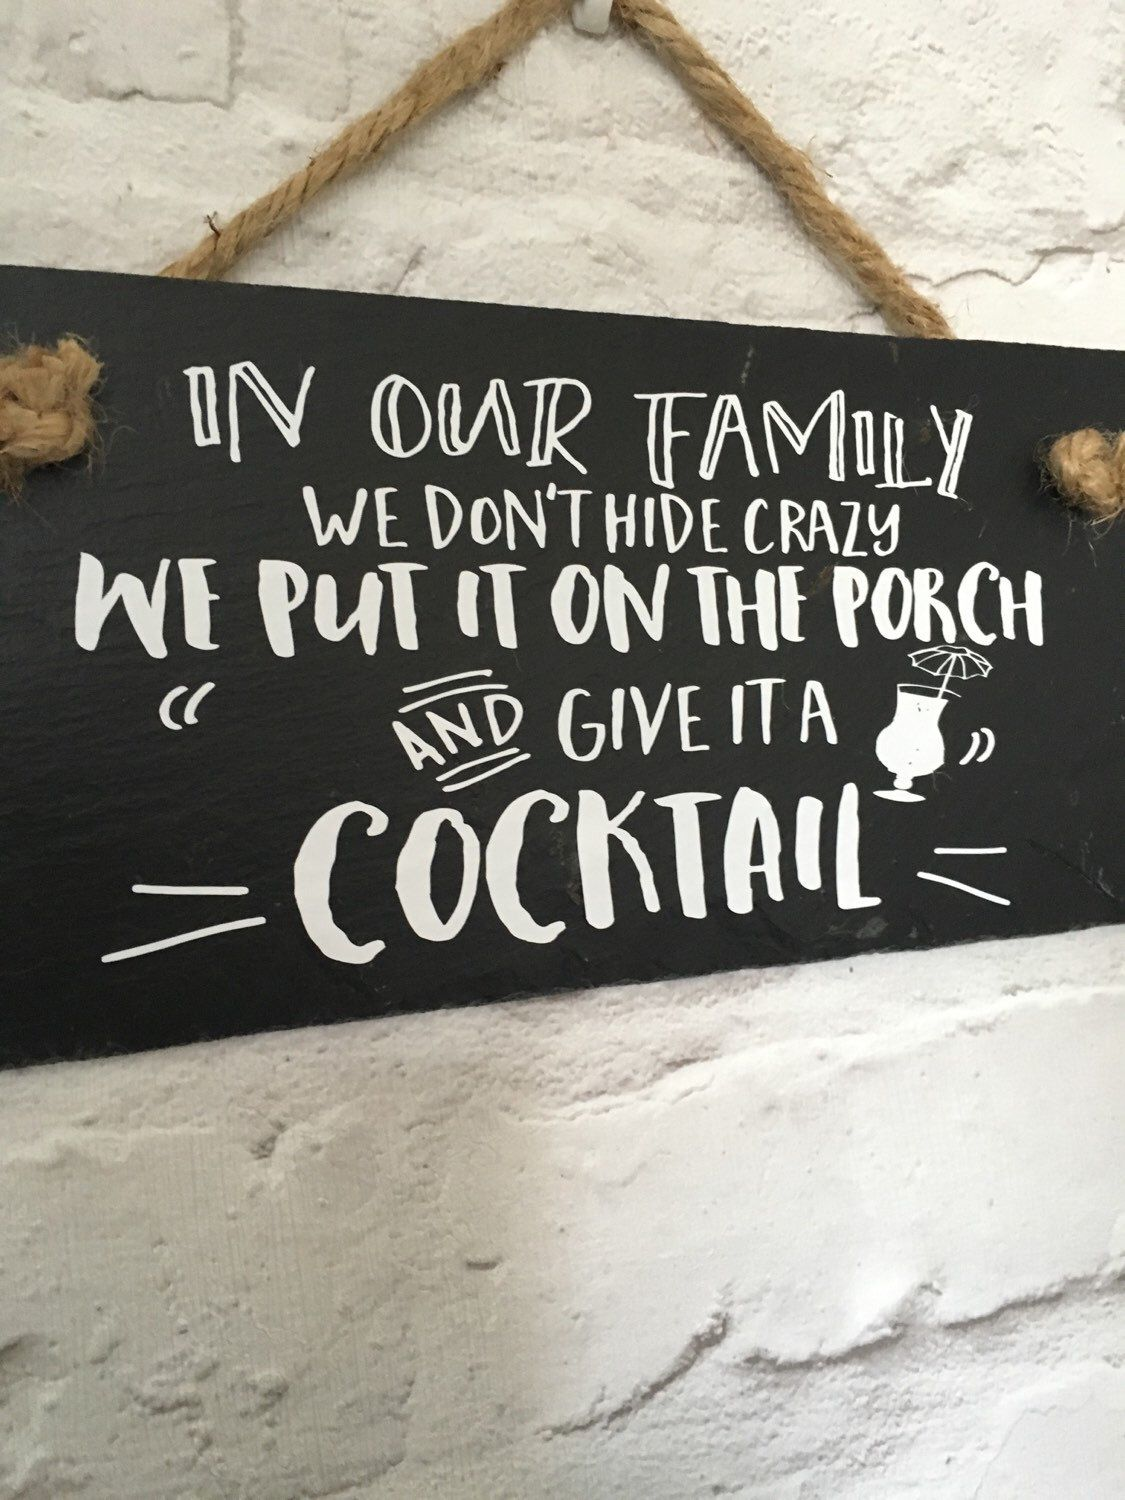 Family Quote Crazy Family Sign Family Slate Sign Crazy Family Quote Funny Family Sign Family Gift Sign Funny Family Quote Funny Signs Family Quotes Funny Crazy Family Quotes Family Quotes